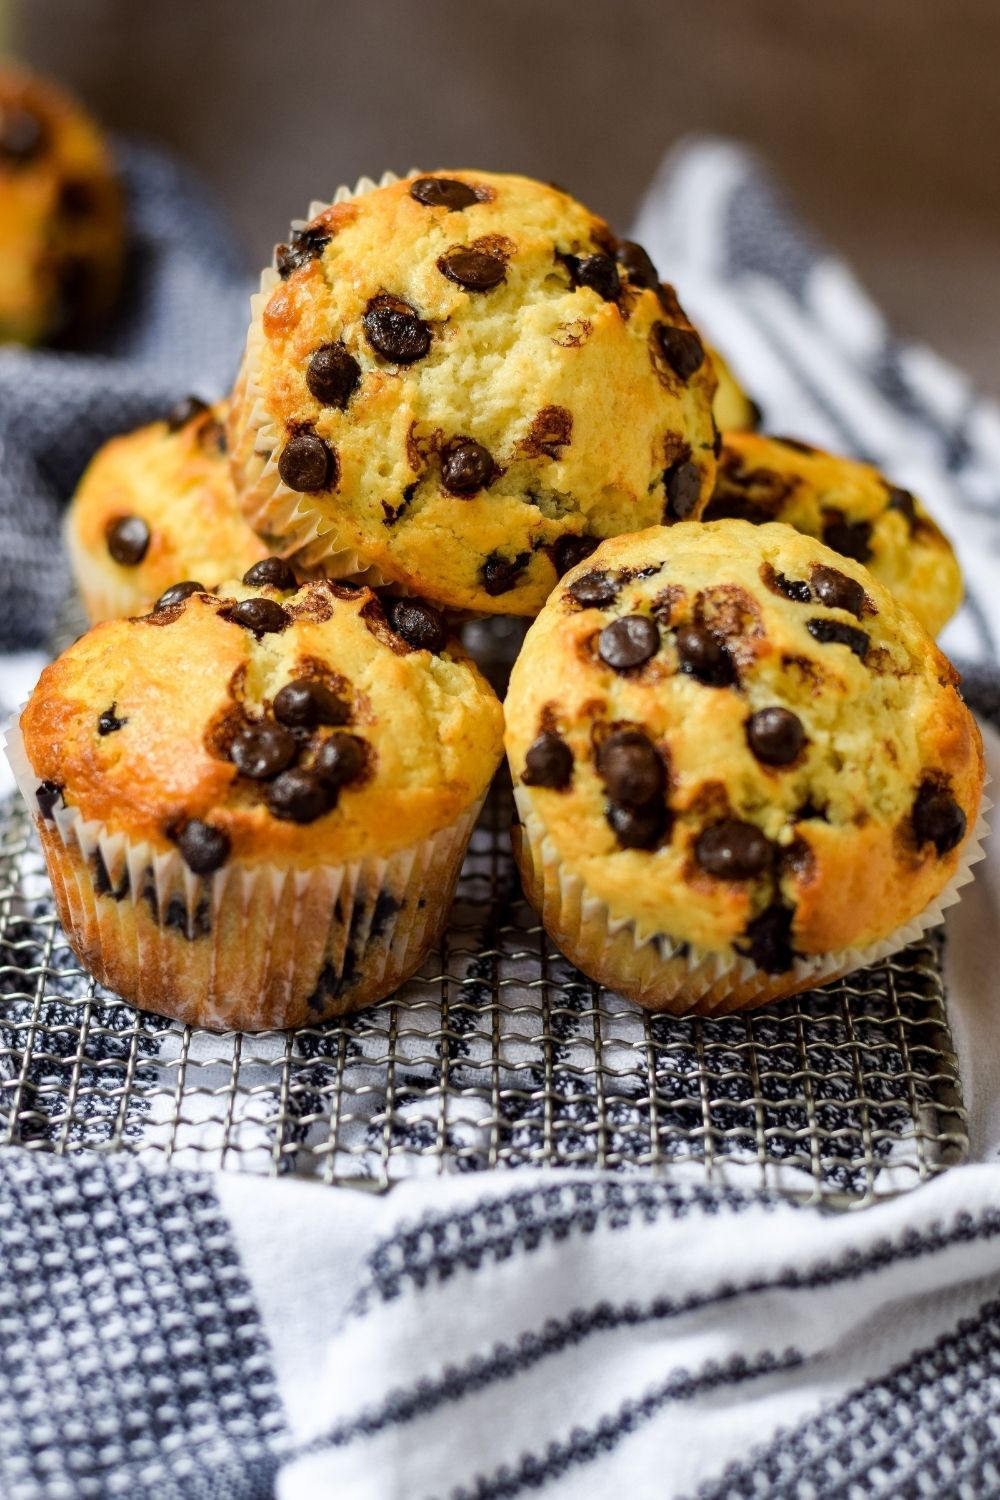 Vanilla Choc-Chip Muffins on a wire rack on top of a kitchen towel